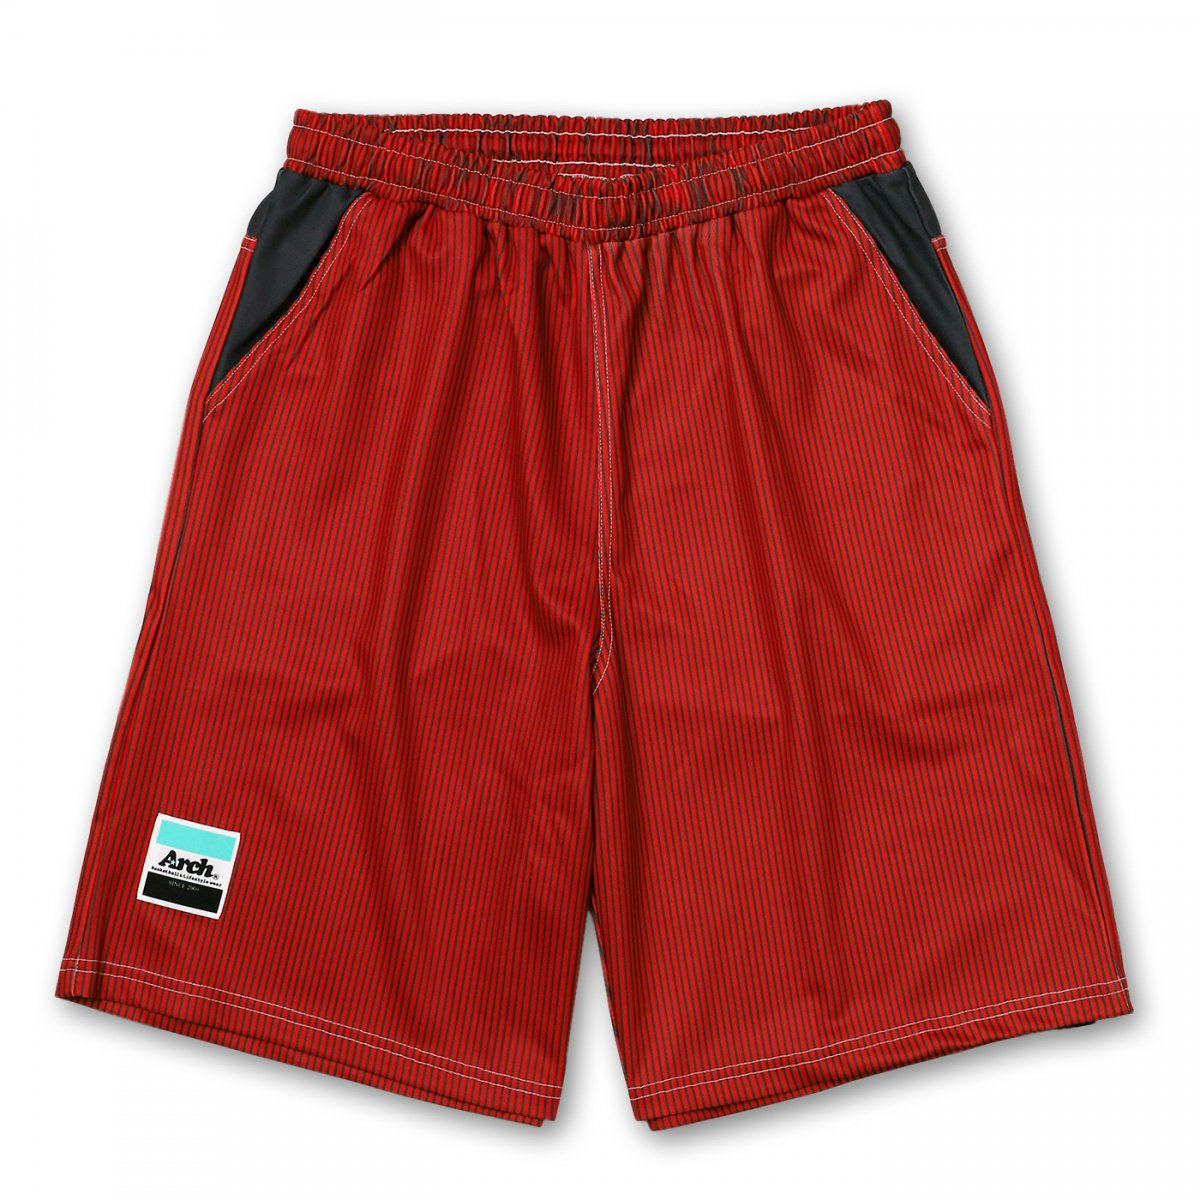 hickory stripe shorts【red】